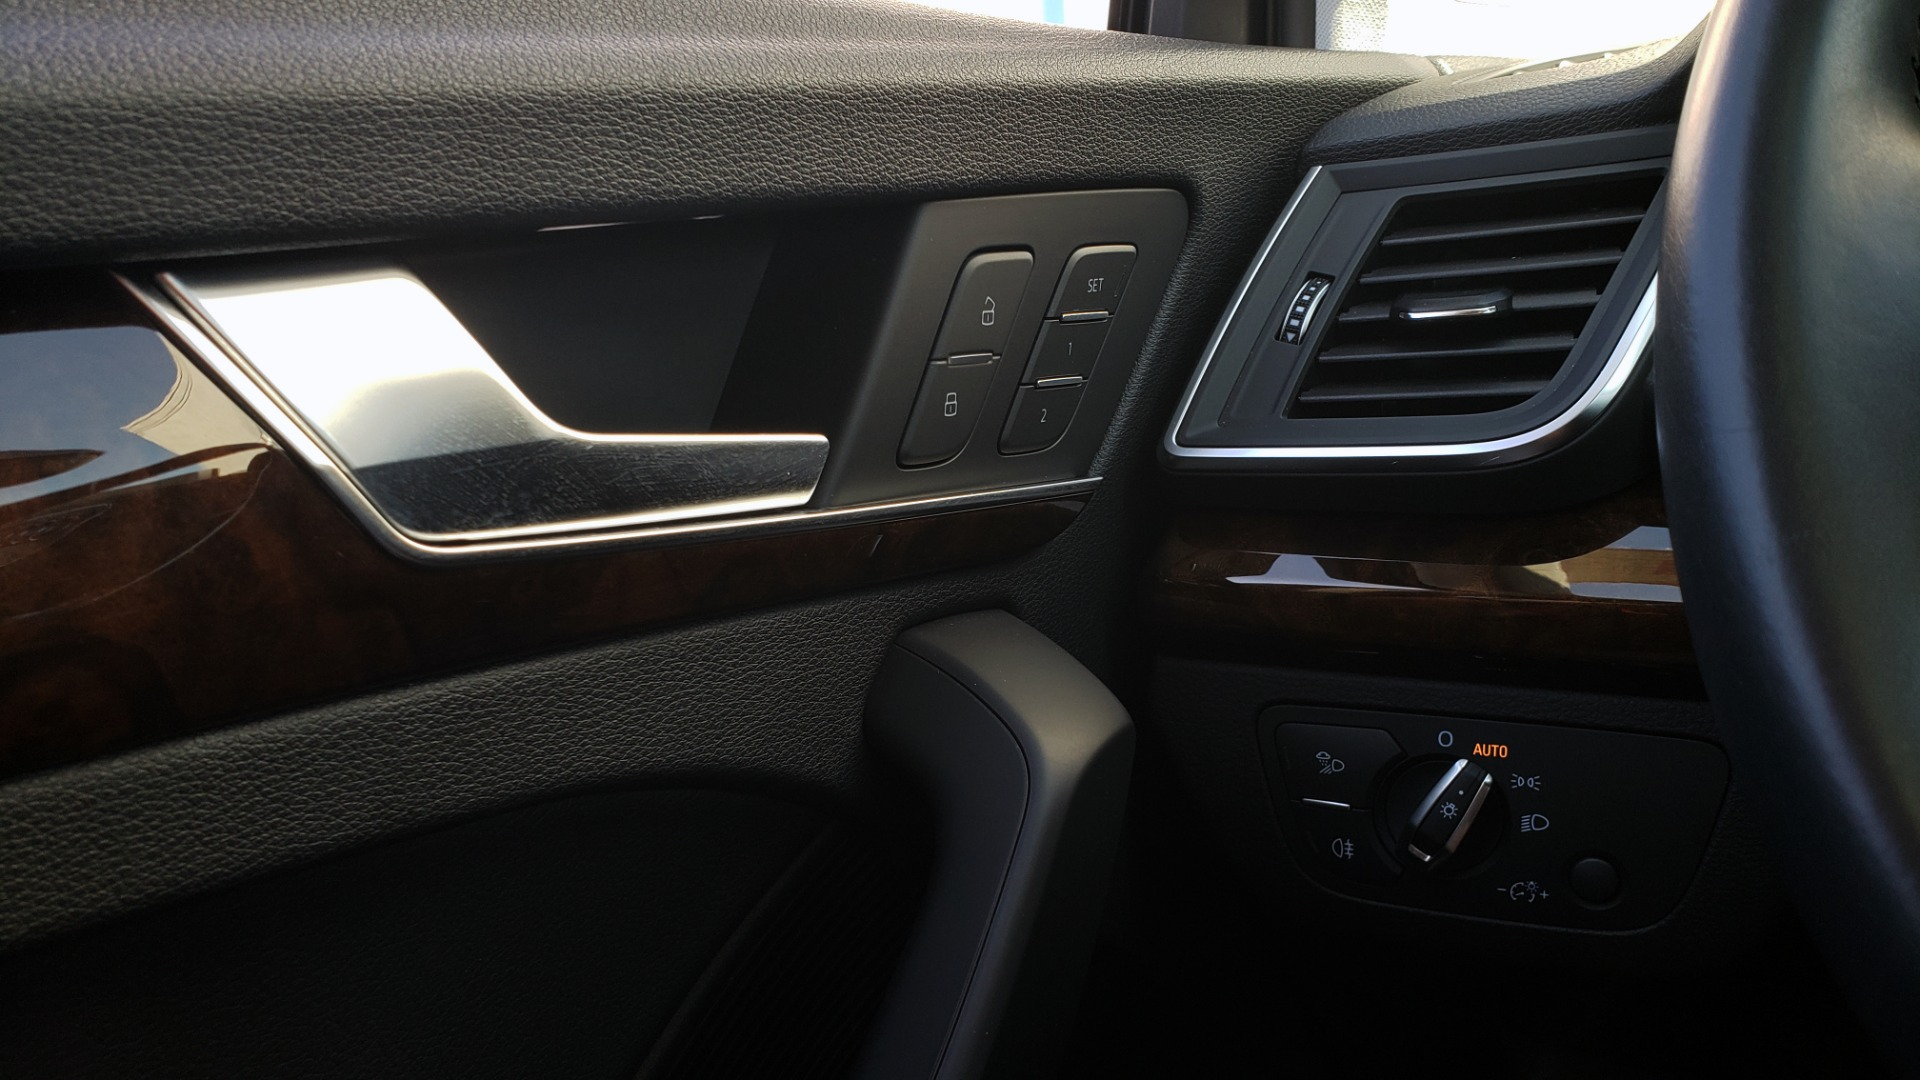 Used 2018 Audi Q5 PREMIUM PLUS / NAV / B&O SND / CLD WTHR / SUNROOF / REARVIEW for sale Sold at Formula Imports in Charlotte NC 28227 40